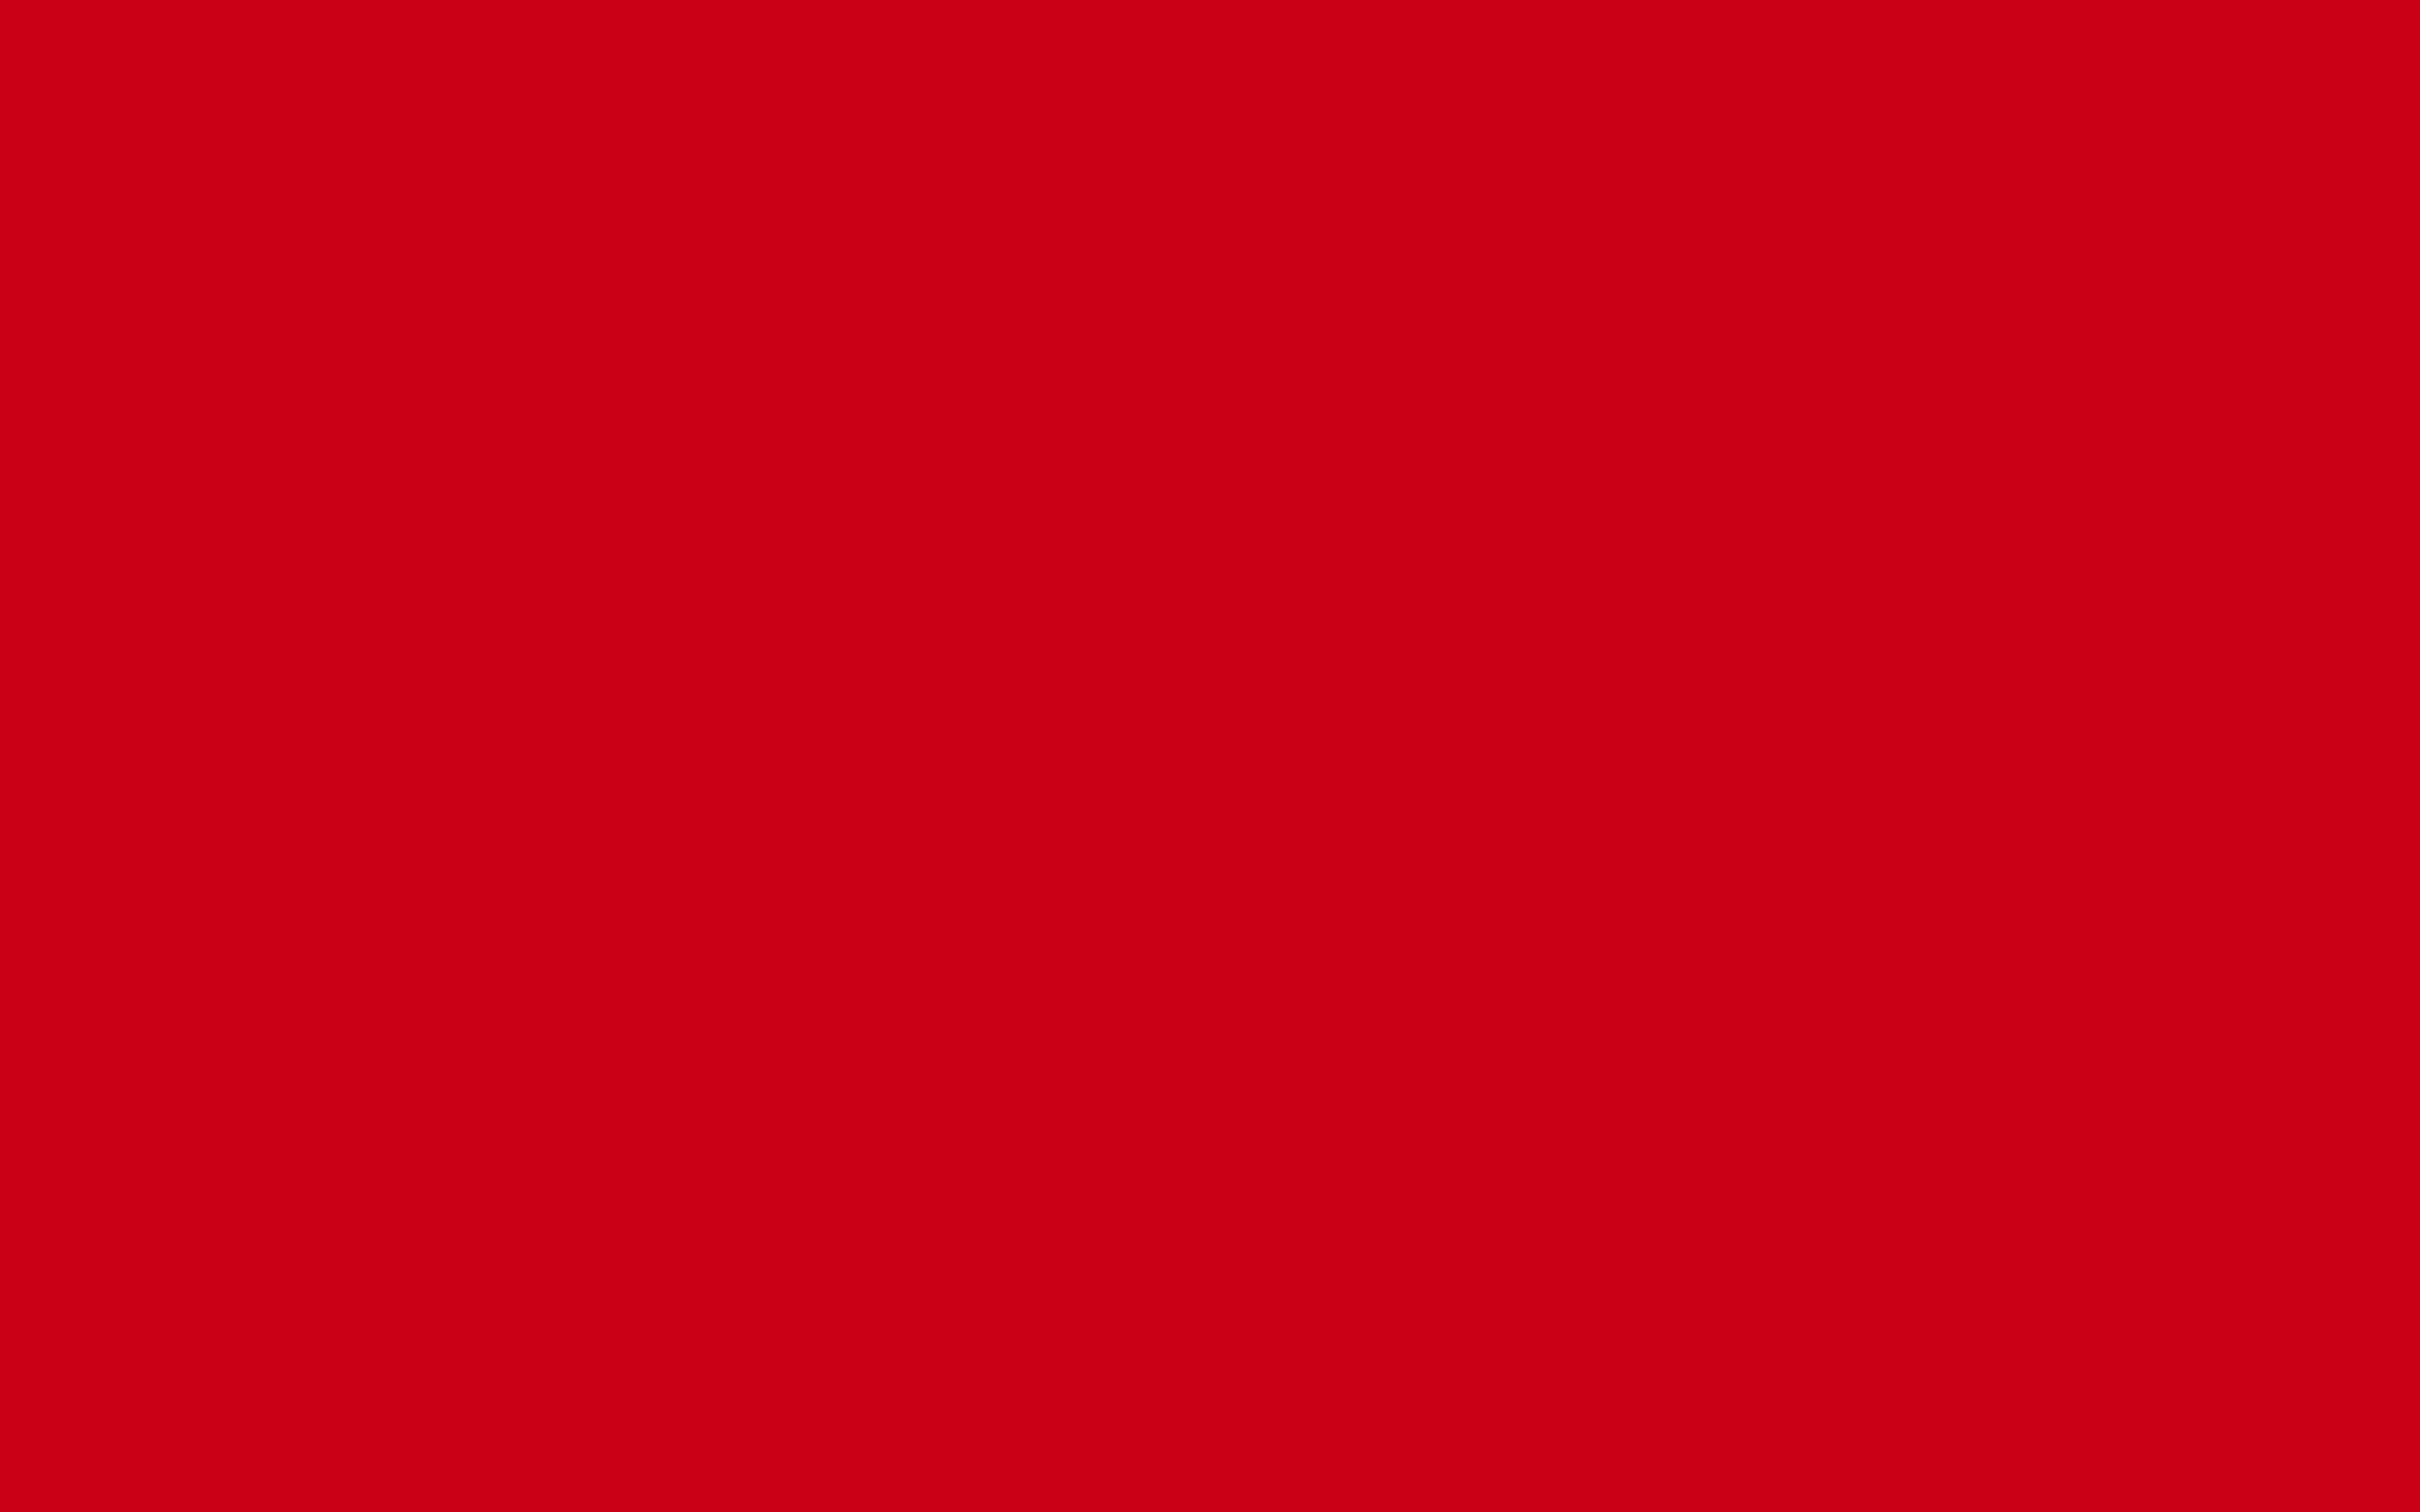 2560x1600 Harvard Crimson Solid Color Background